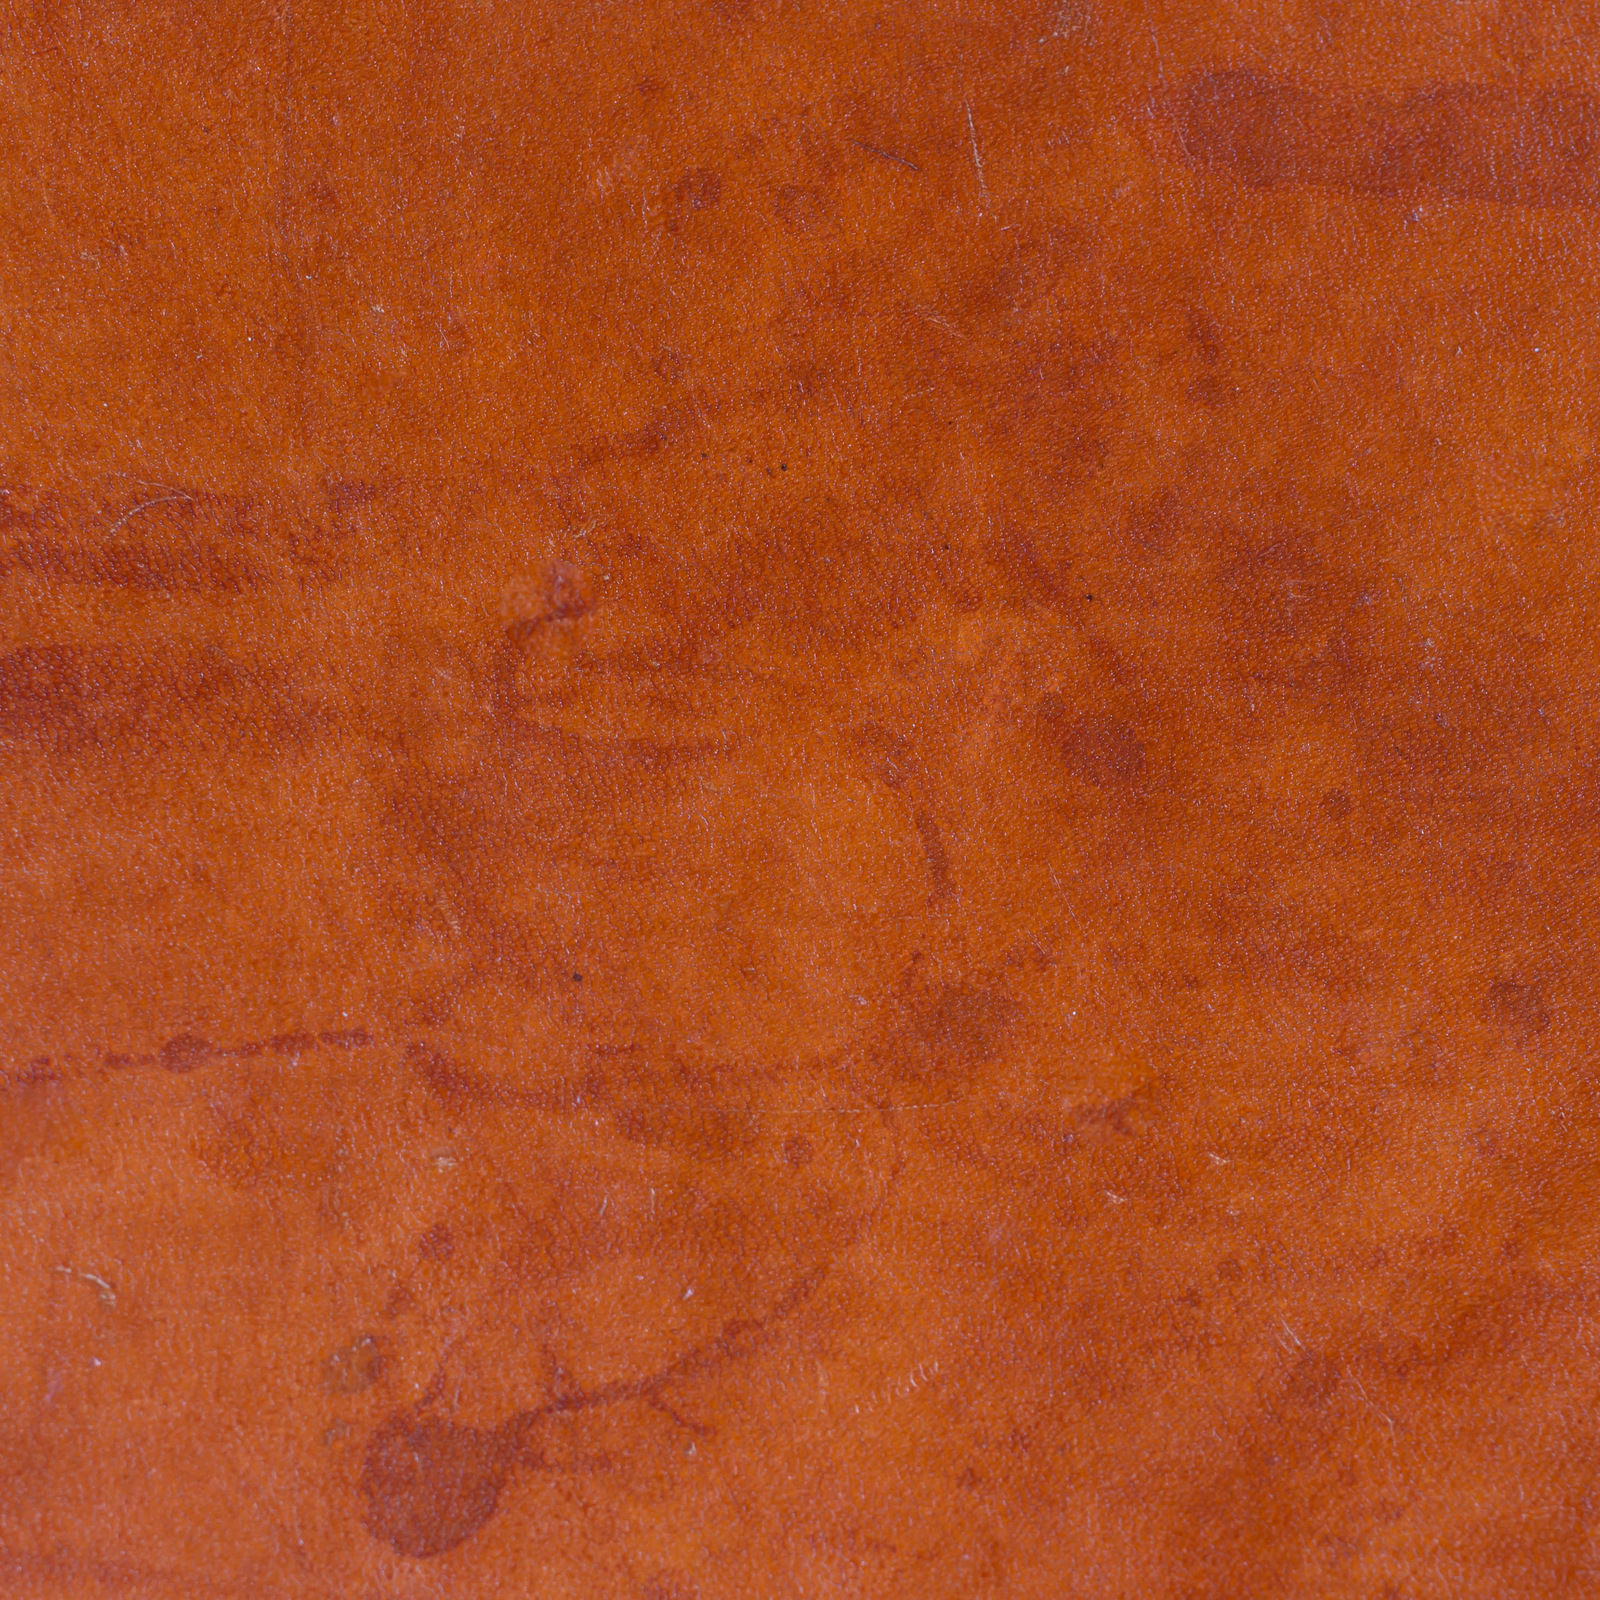 AGED NATURAL LEATHER